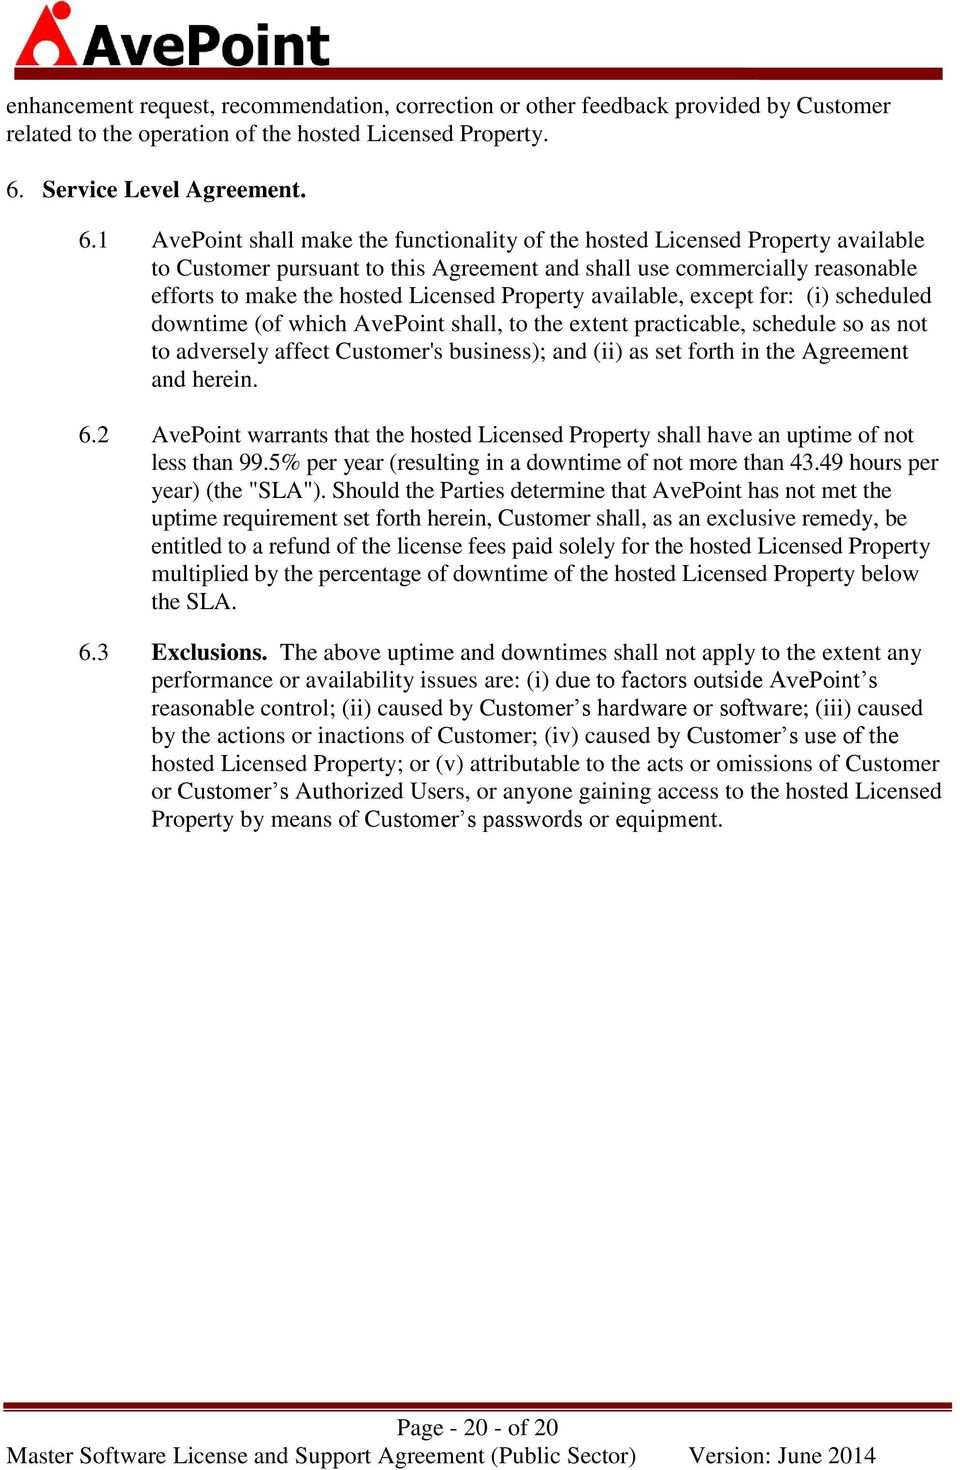 1 AvePoint shall make the functionality of the hosted Licensed Property available to Customer pursuant to this Agreement and shall use commercially reasonable efforts to make the hosted Licensed